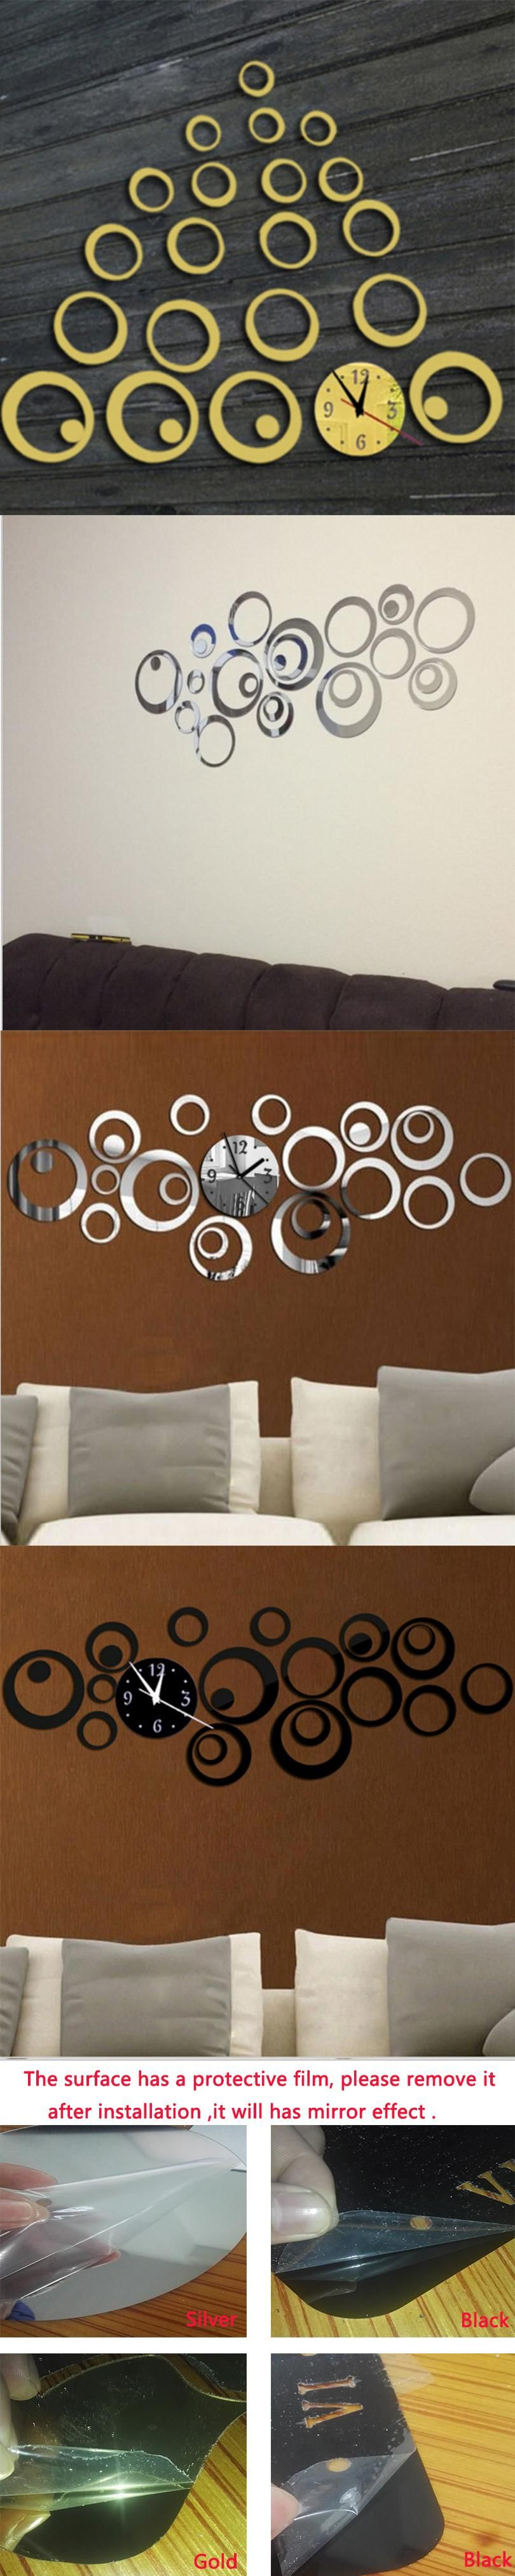 2017 new quartz wall clock modern design reloj de pared large